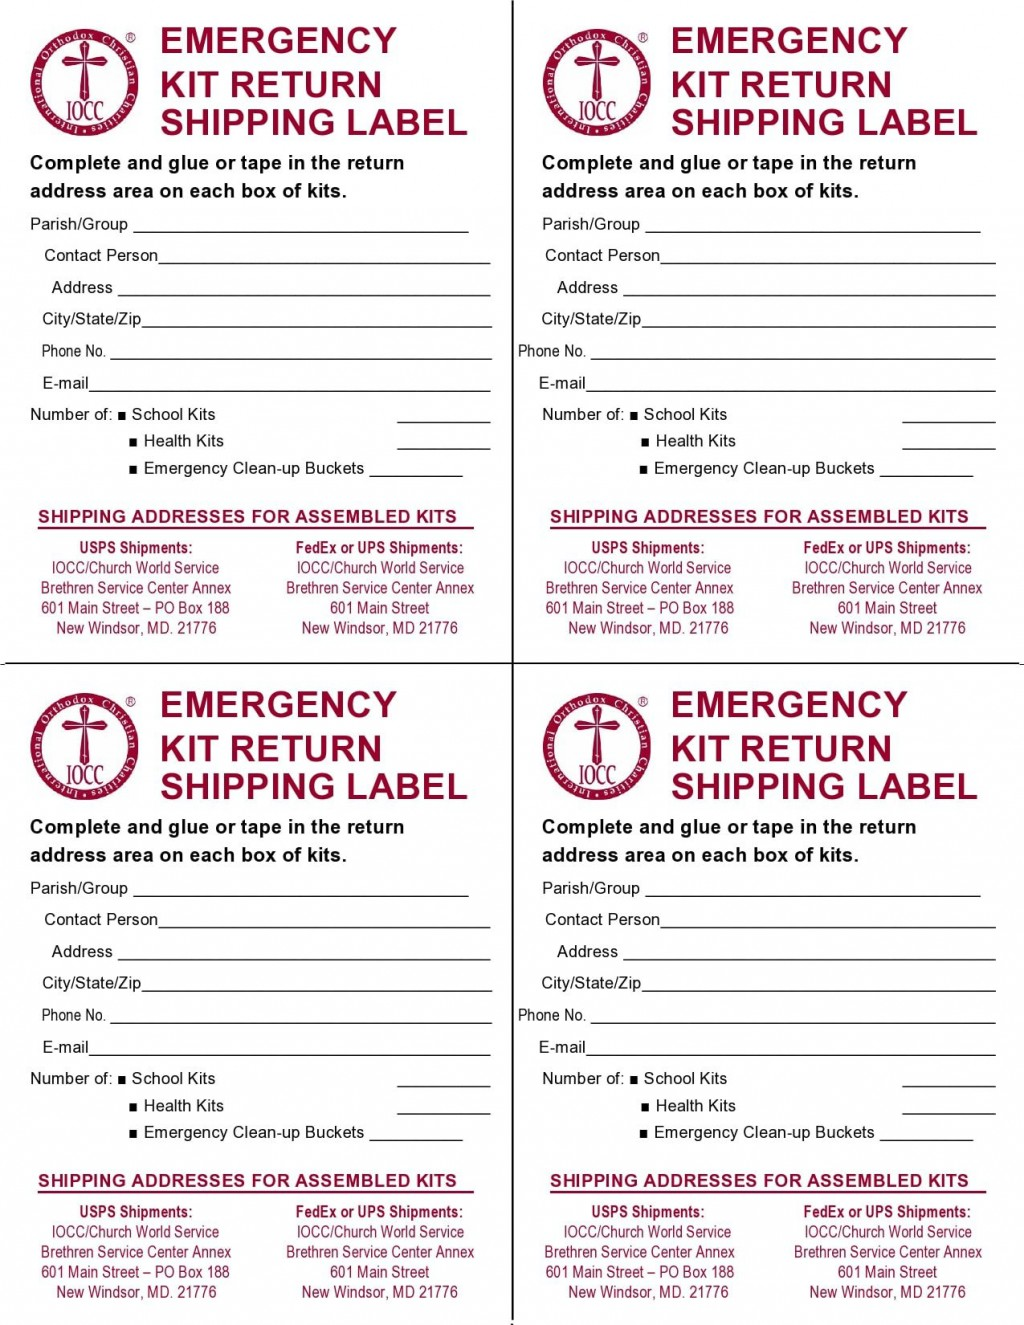 009 Impressive Shipping Label Template Free Word Picture Large